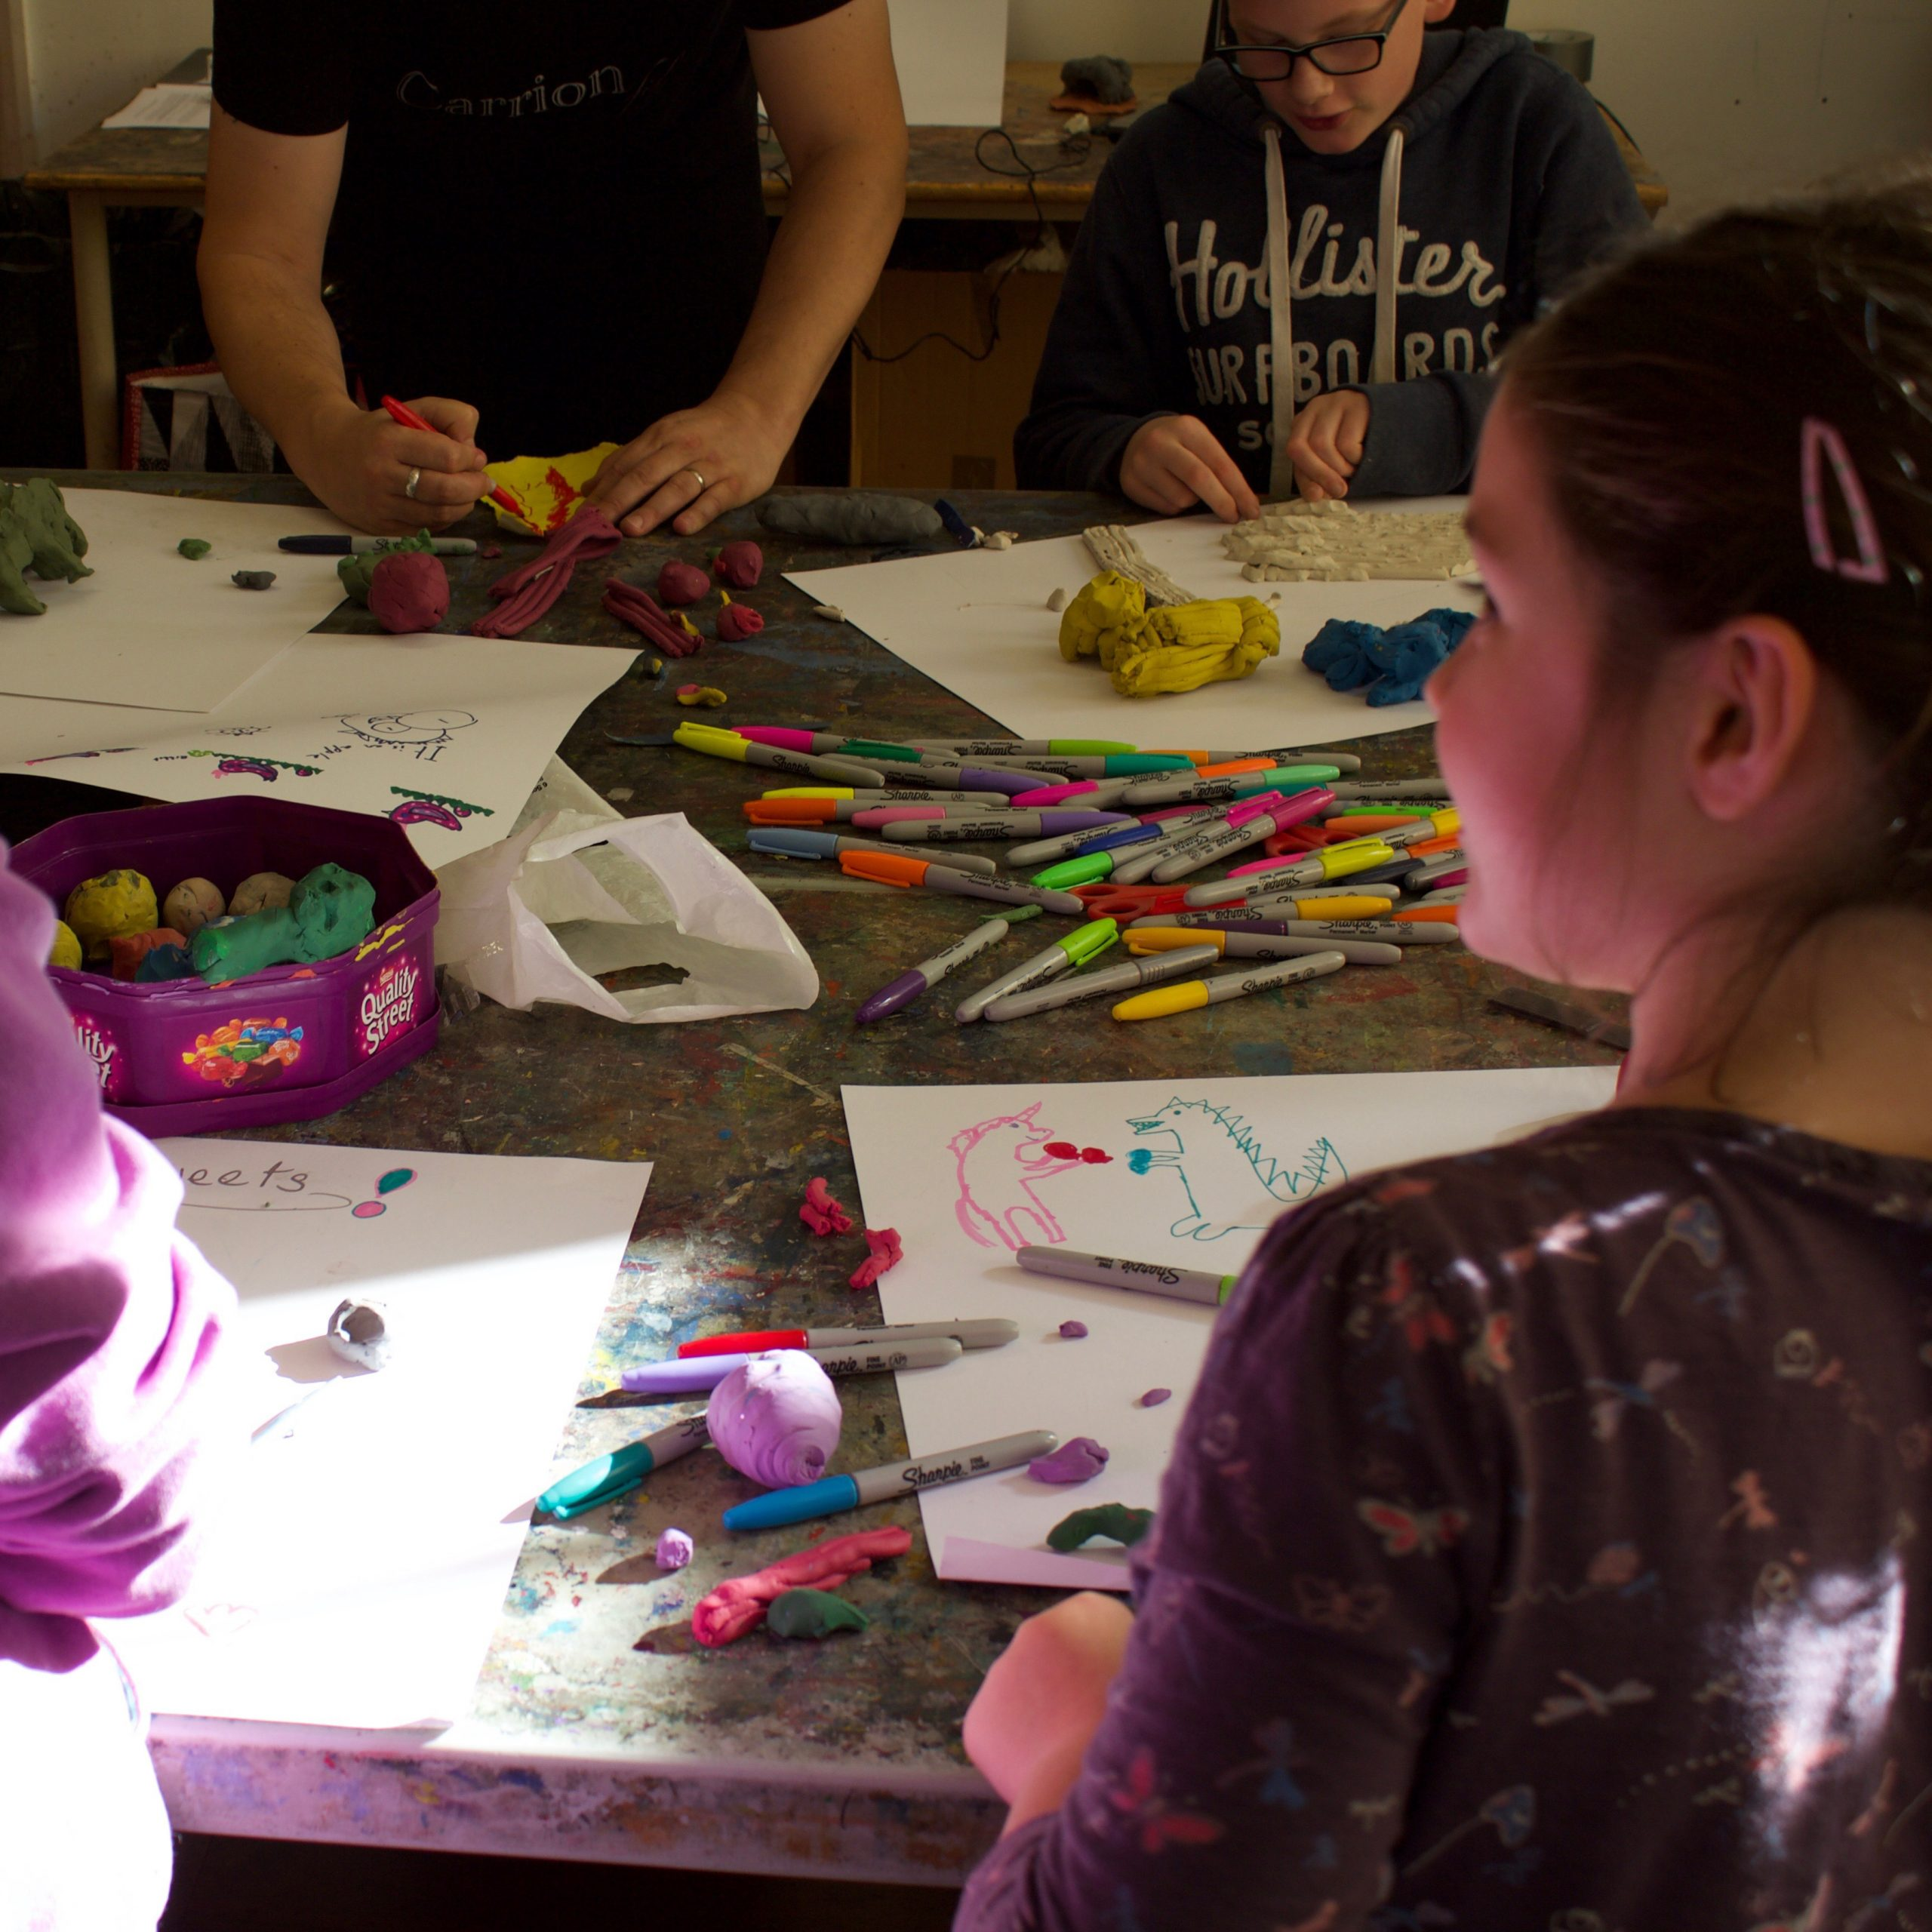 A group of young people make plasticine models